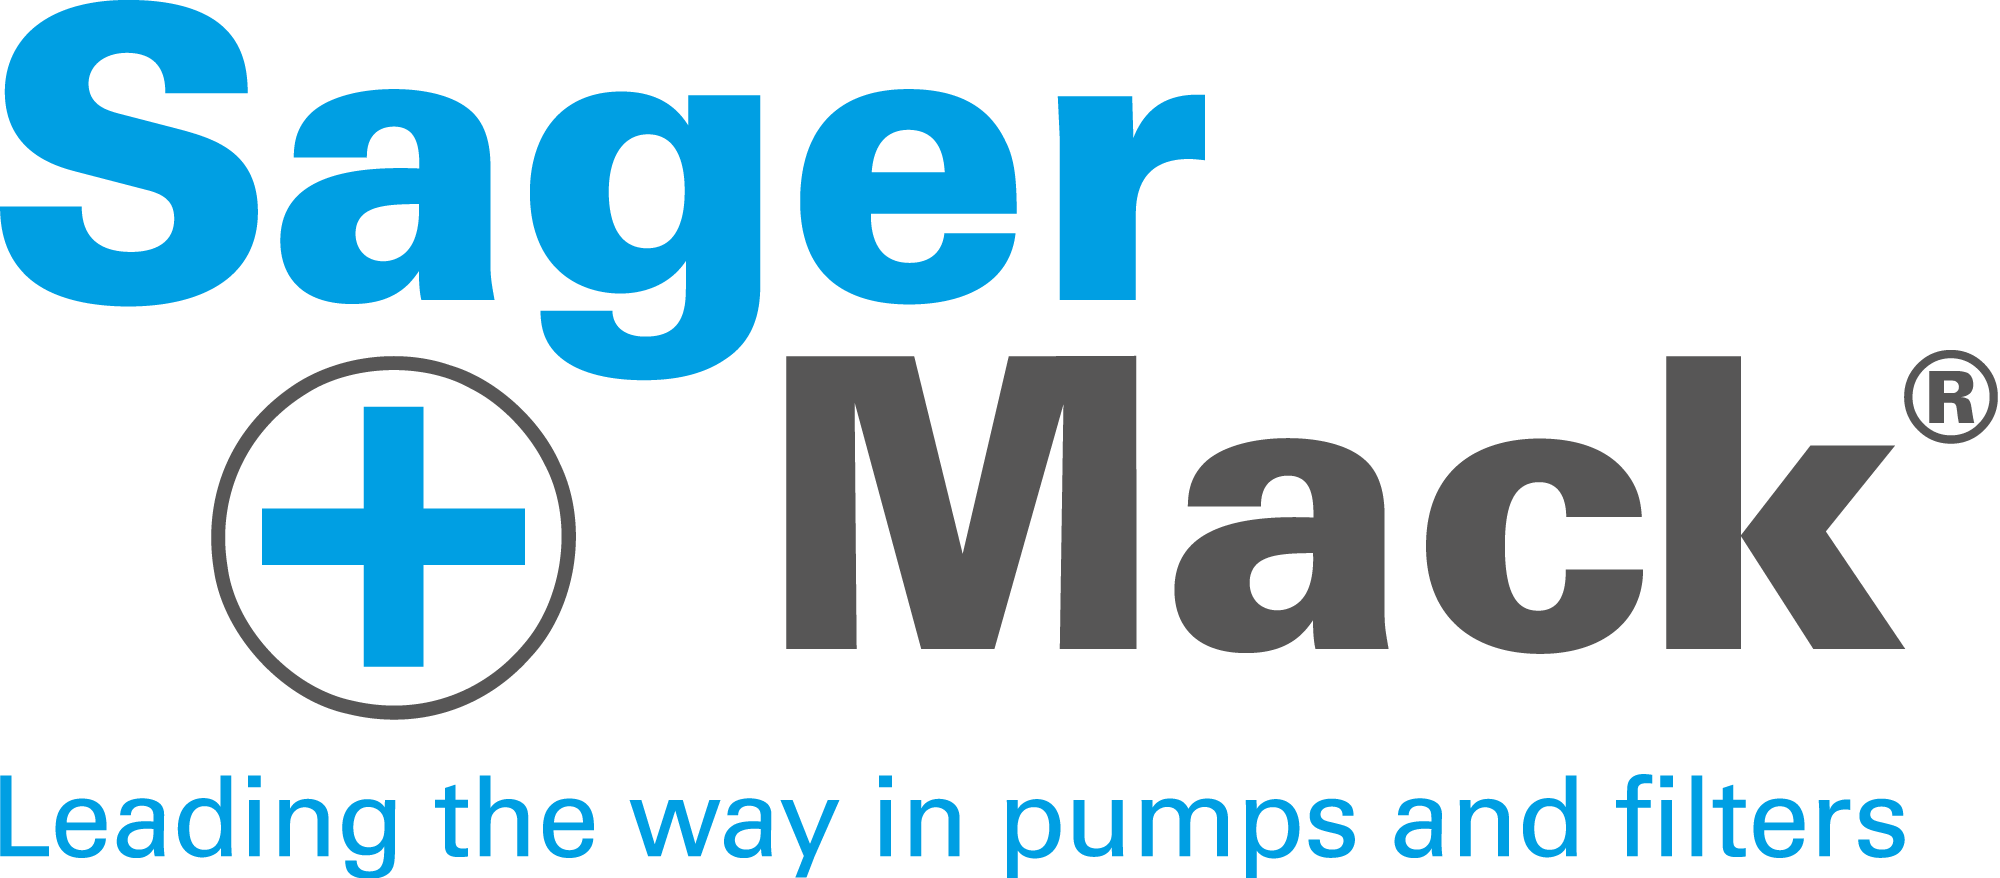 Sager + Mack GmbH | Leading the way in pumps and filters